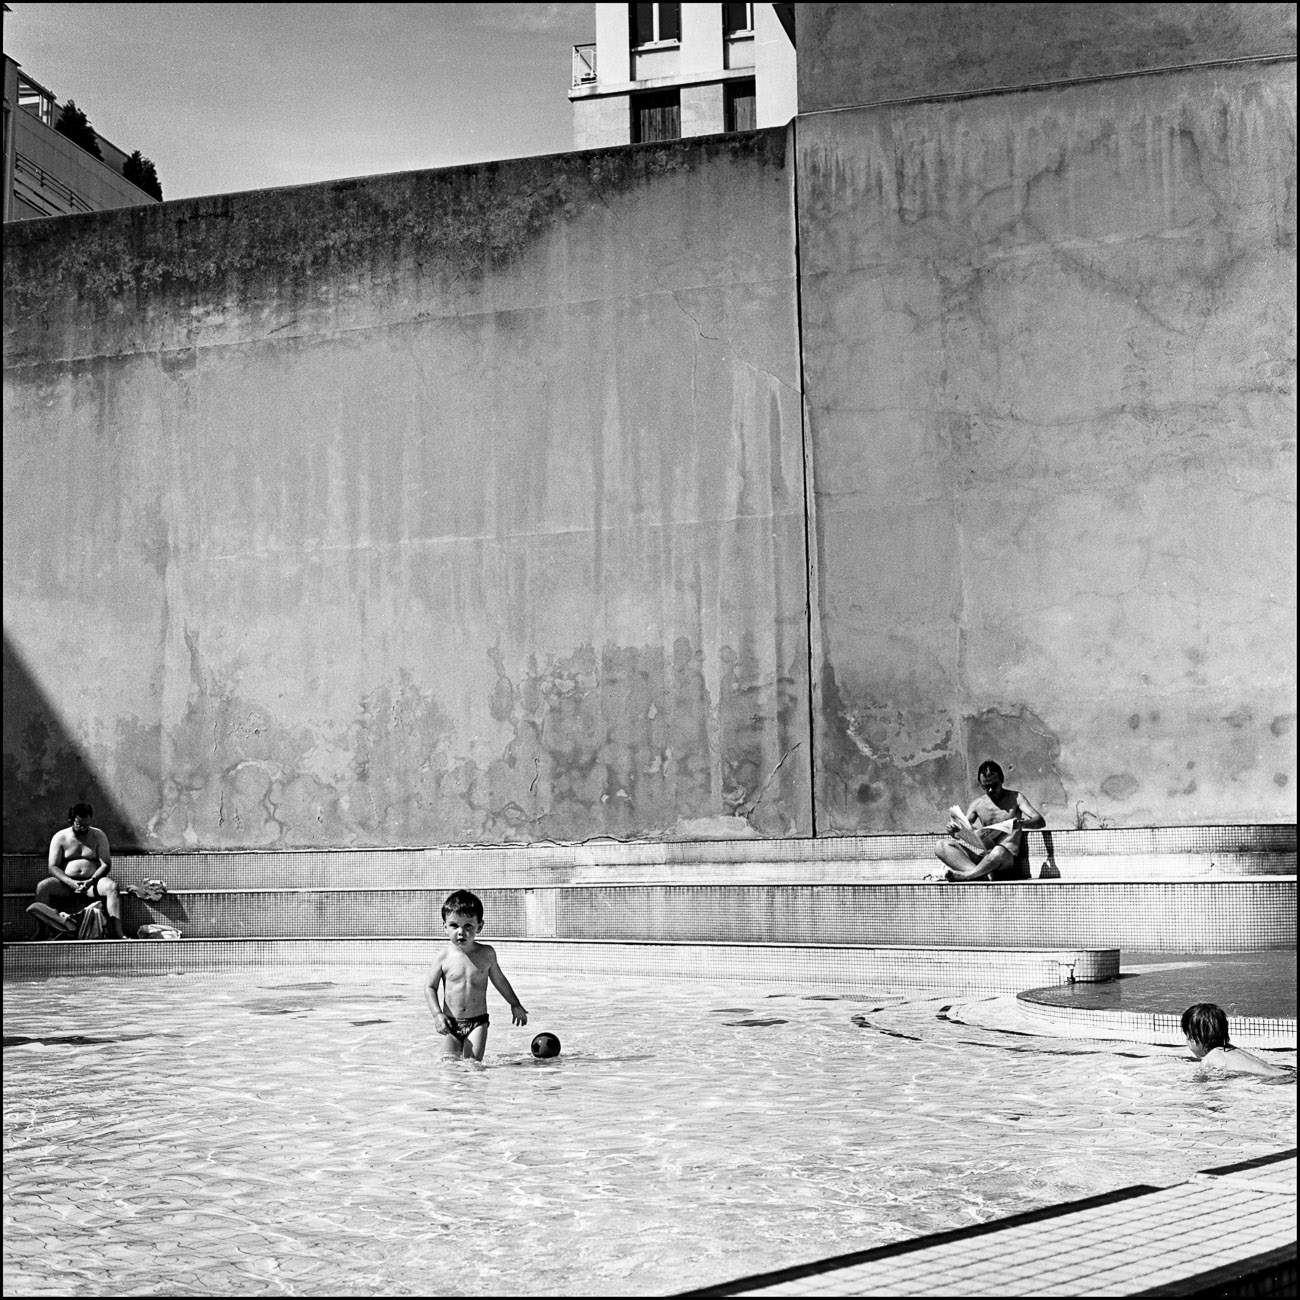 La piscine rue david d angers et pr s de la gare du nord for Piscine paris